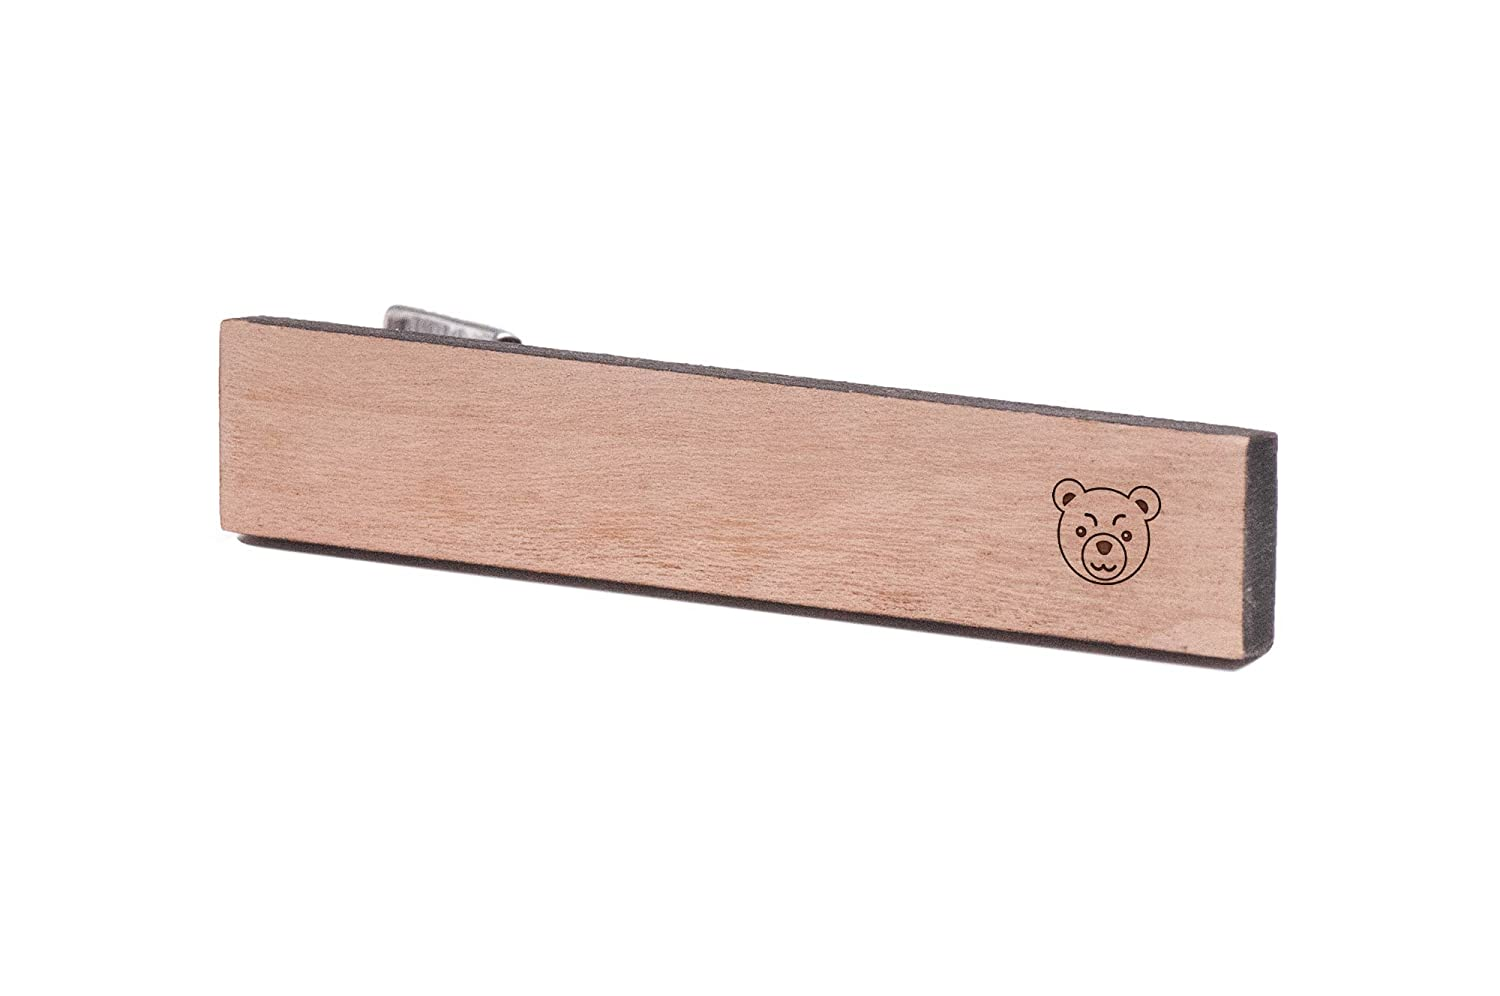 Wooden Accessories Company Wooden Tie Clips with Laser Engraved Angry Bear Design Cherry Wood Tie Bar Engraved in The USA